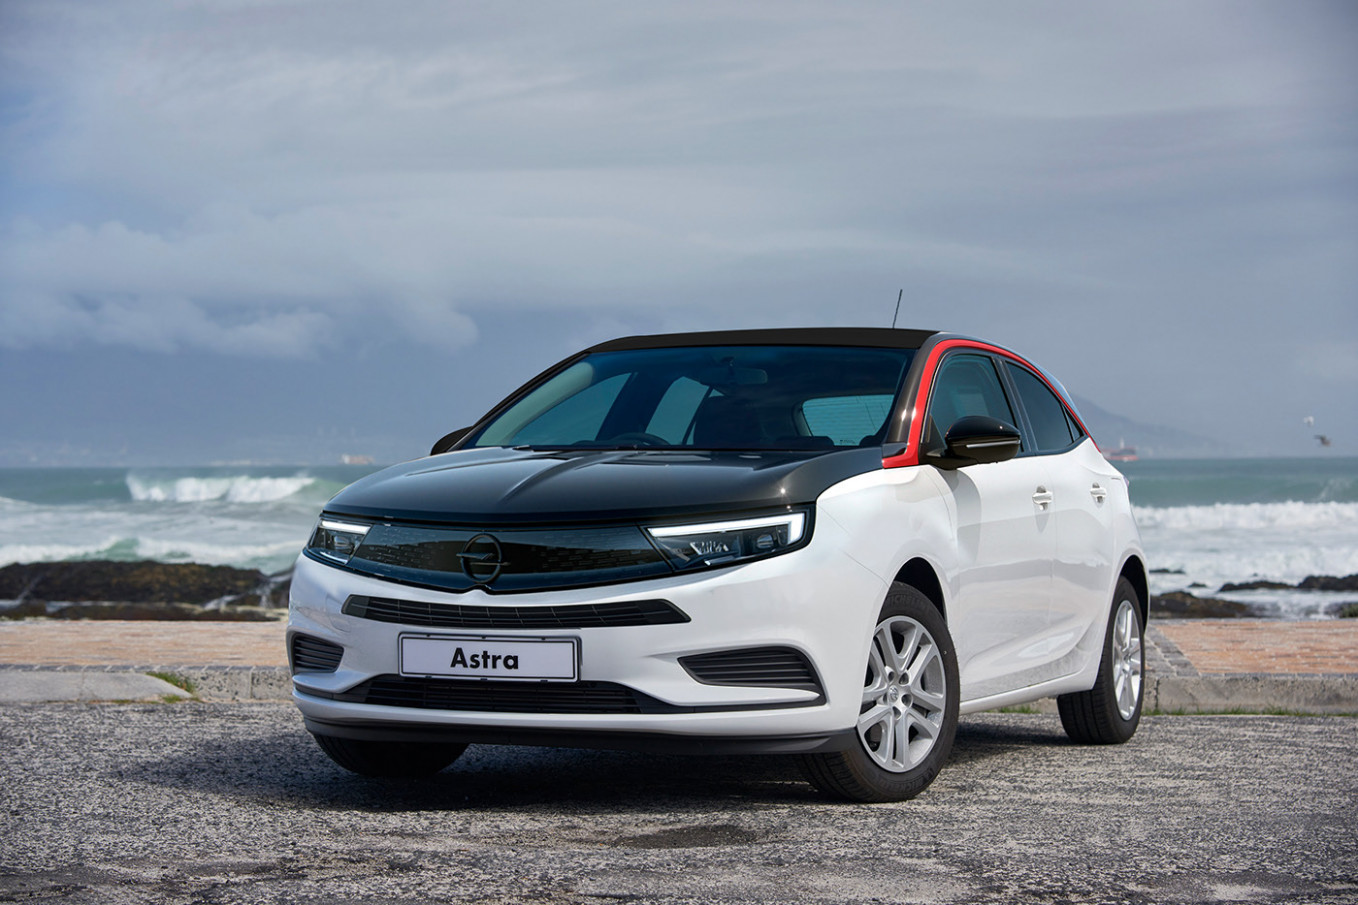 Redesign and Concept New Opel Astra 2022